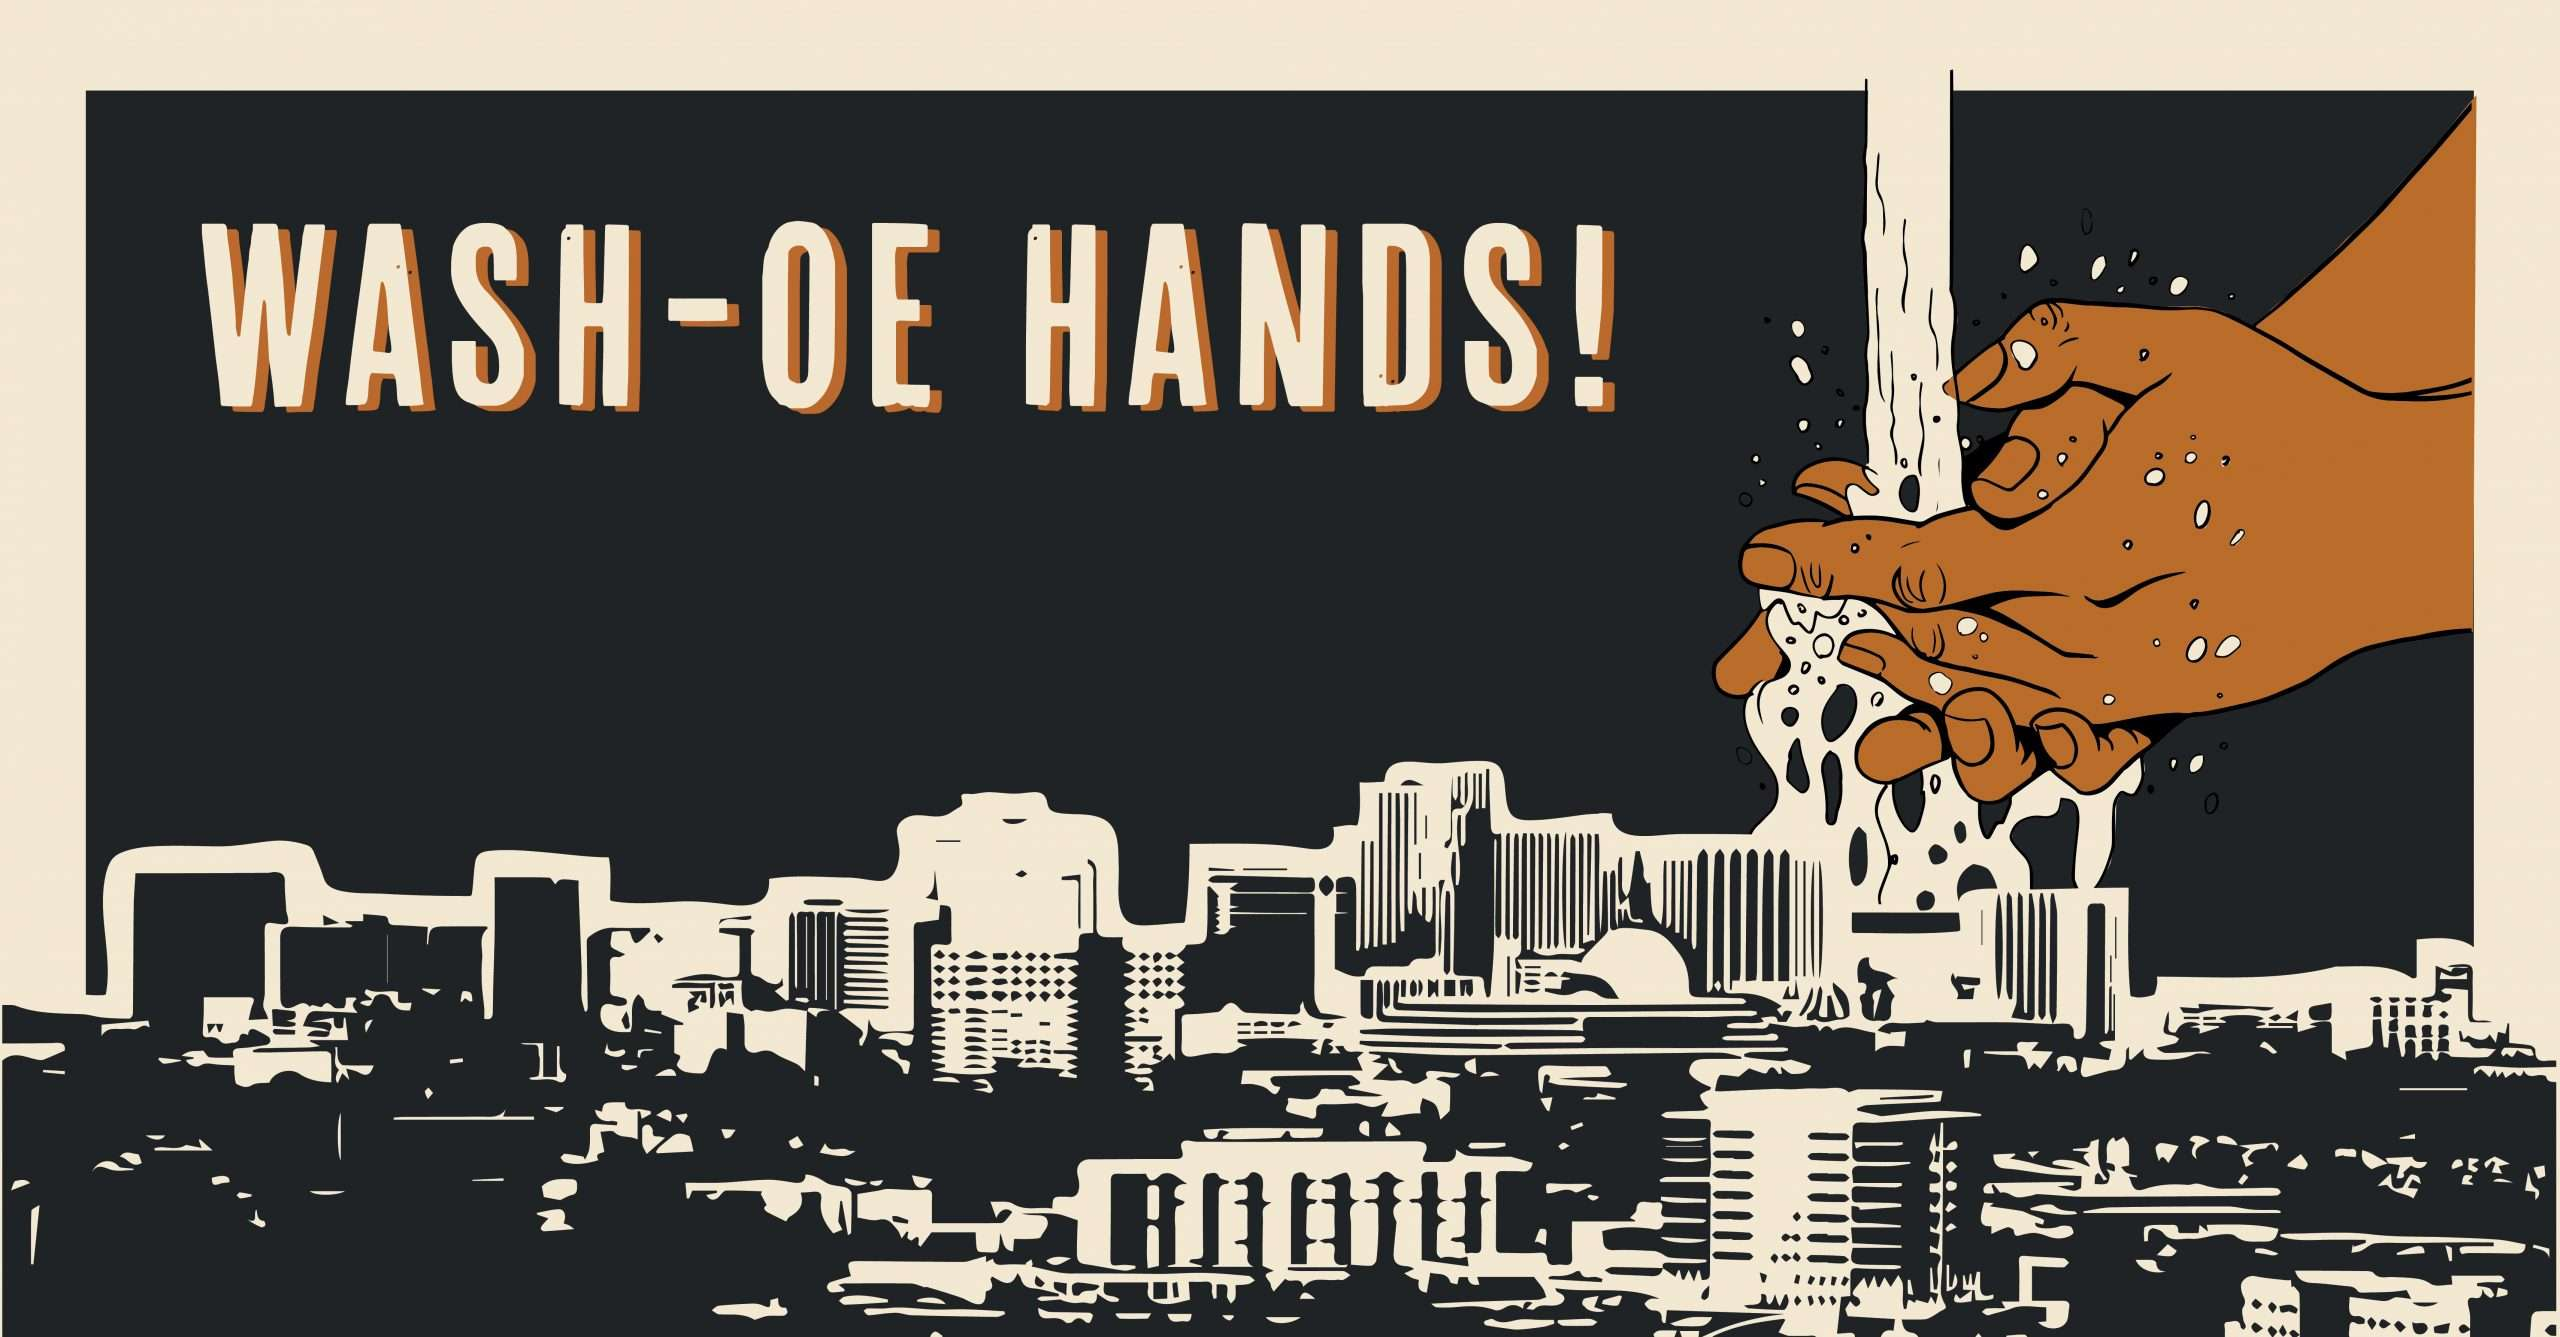 Mabble Media - Creative Agency | Announcing Wash-oe Hands - Graphic Print